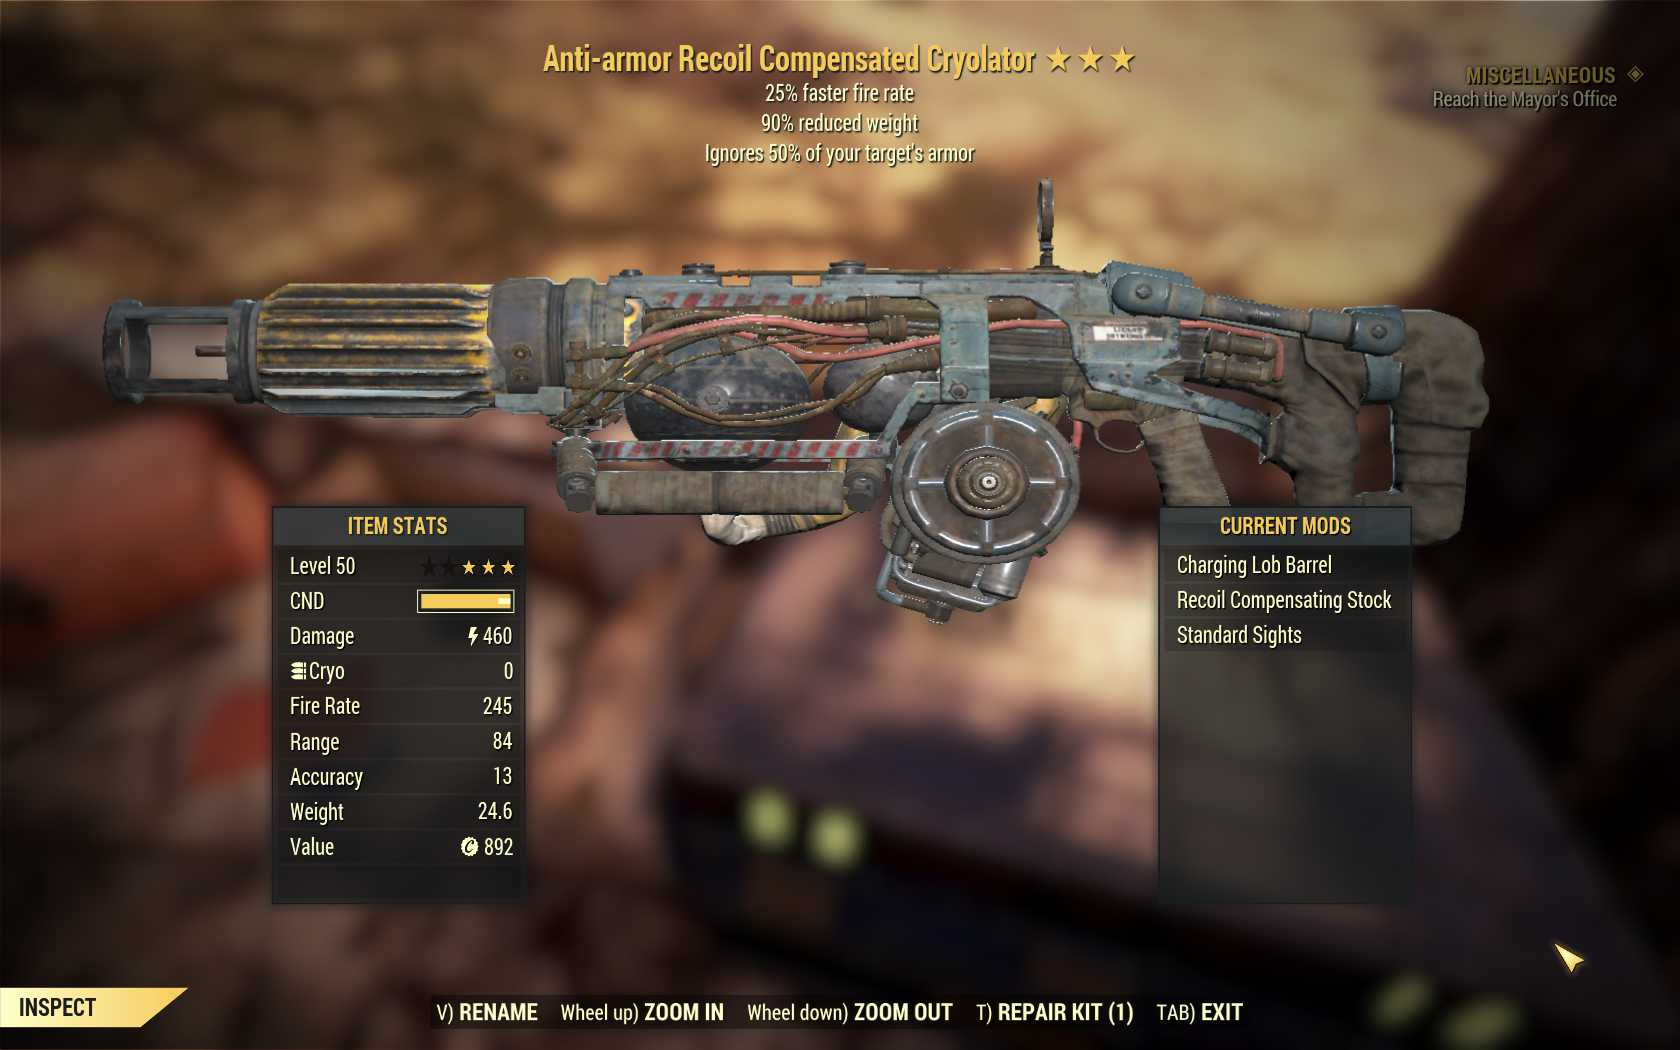 [Glitched weapon] Anti-Armor Cryolator-Tesla (25% faster fire rate, 90% reduced weight)